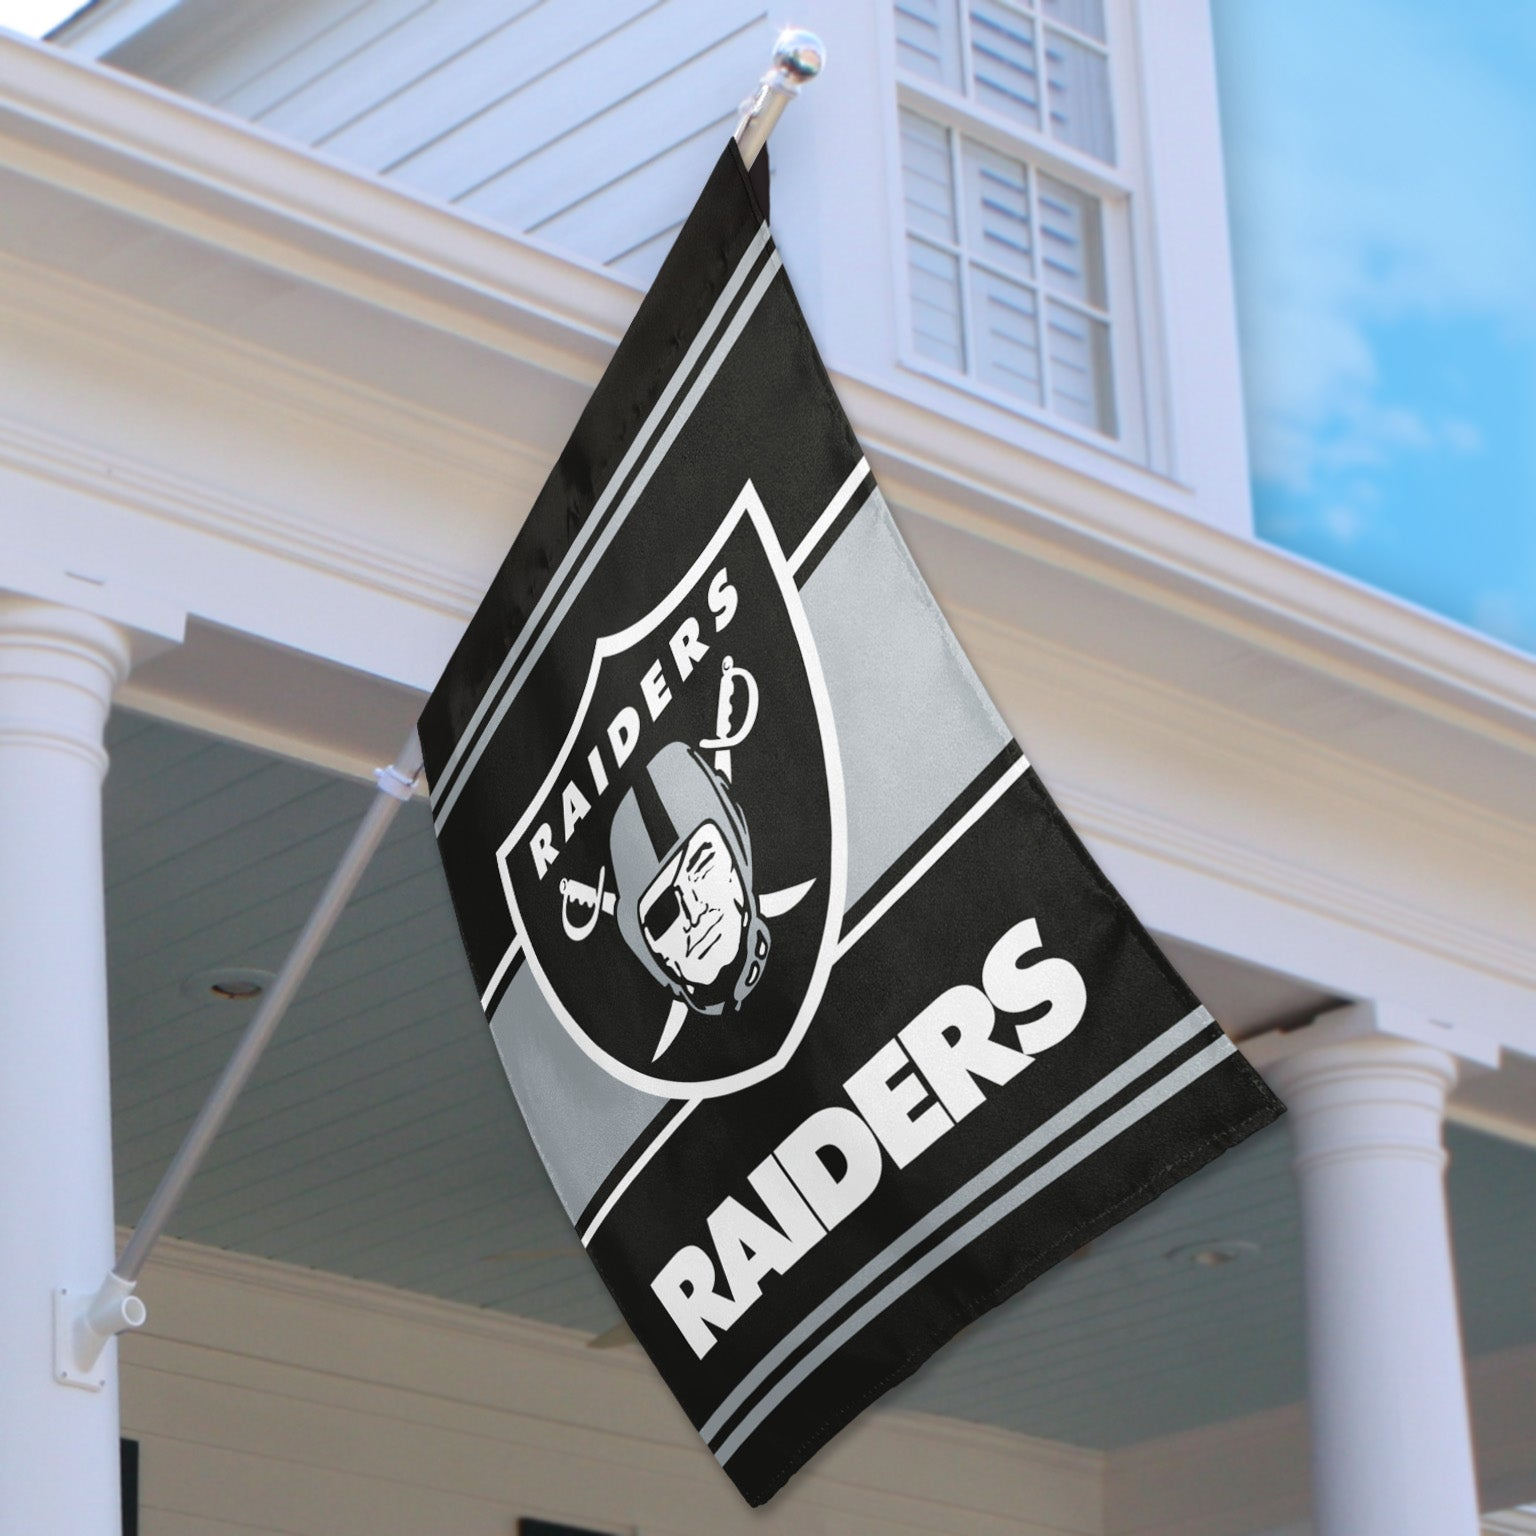 Las Vegas Raiders Official 2 Sided House Flag Imported Fremont Die Retail Store